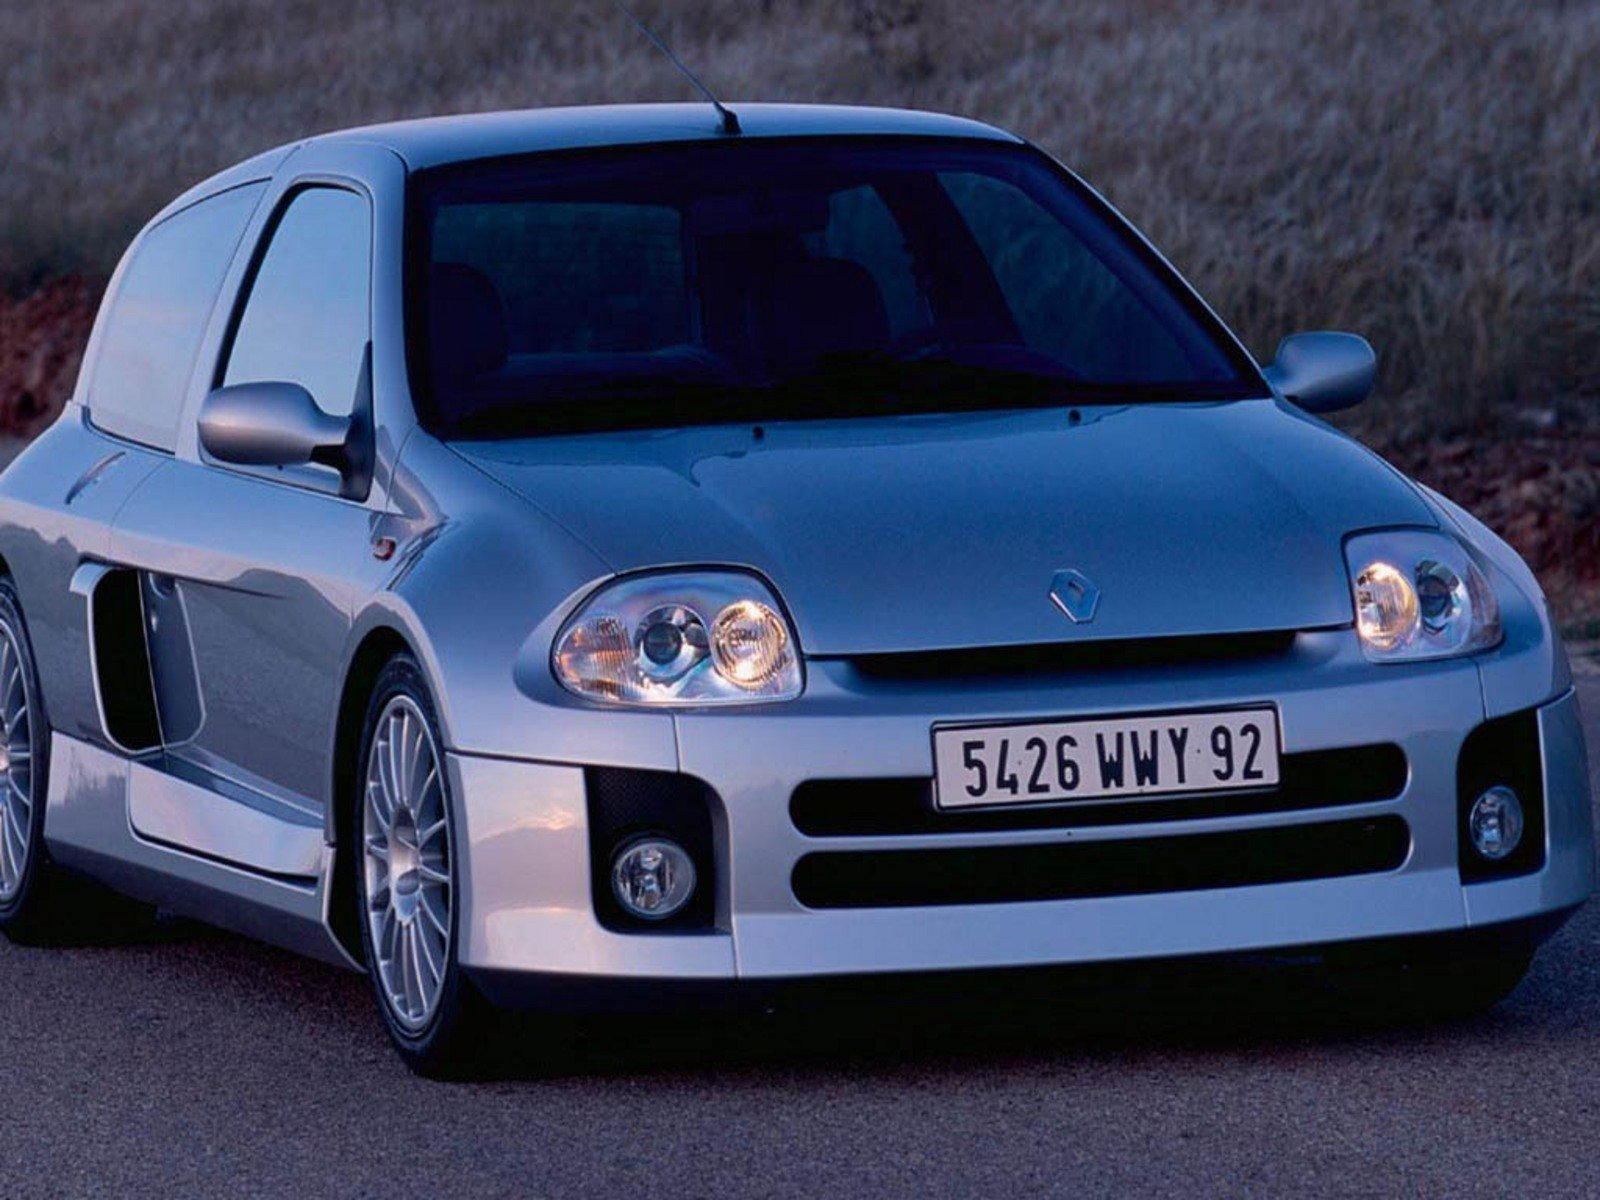 2004 renault clio v6 review top speed. Black Bedroom Furniture Sets. Home Design Ideas